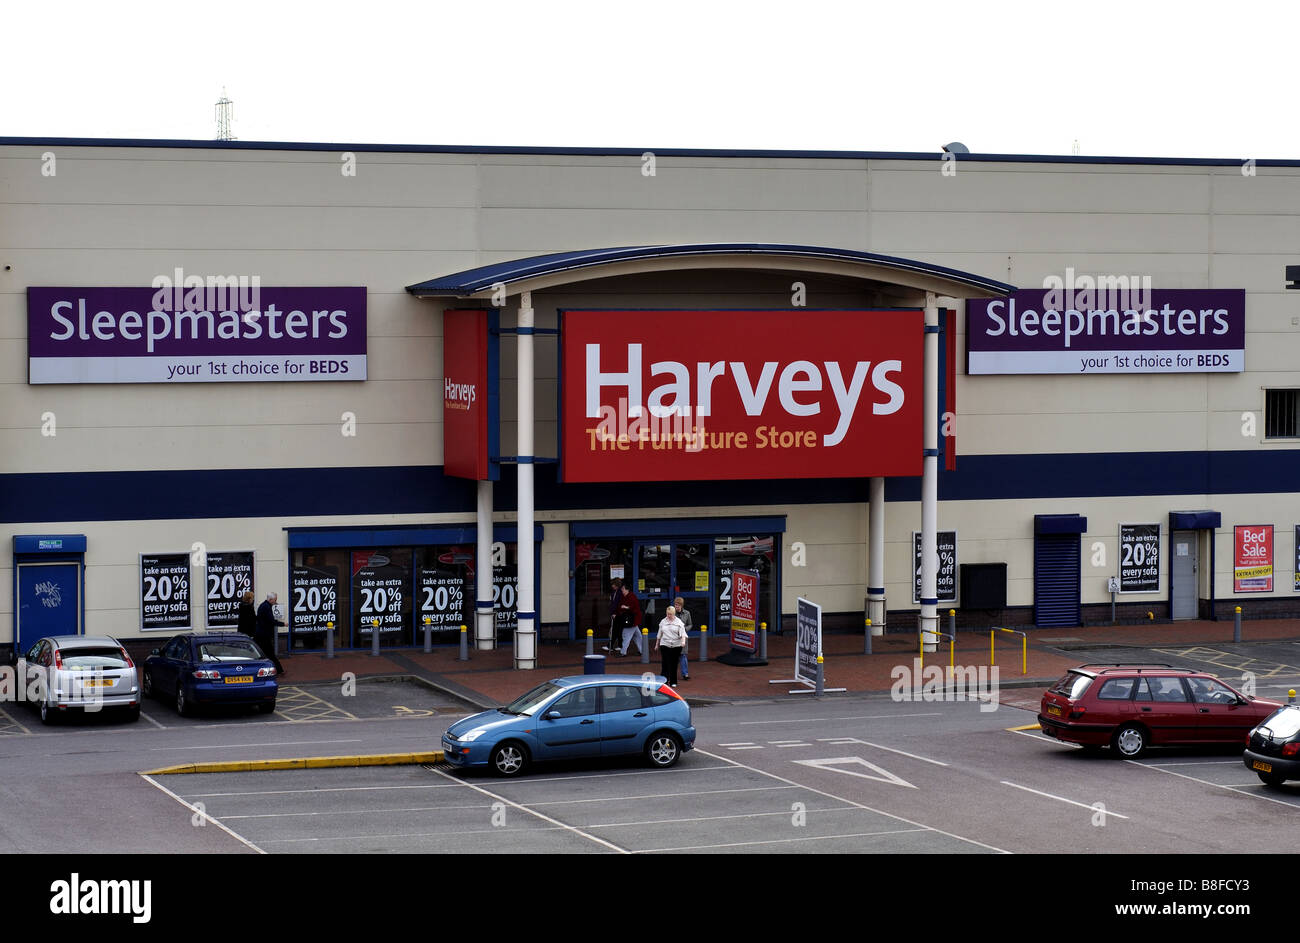 Harveys Furniture Store Erdington Birmingham Uk Stock Photo Royalty Free Image 22467063 Alamy